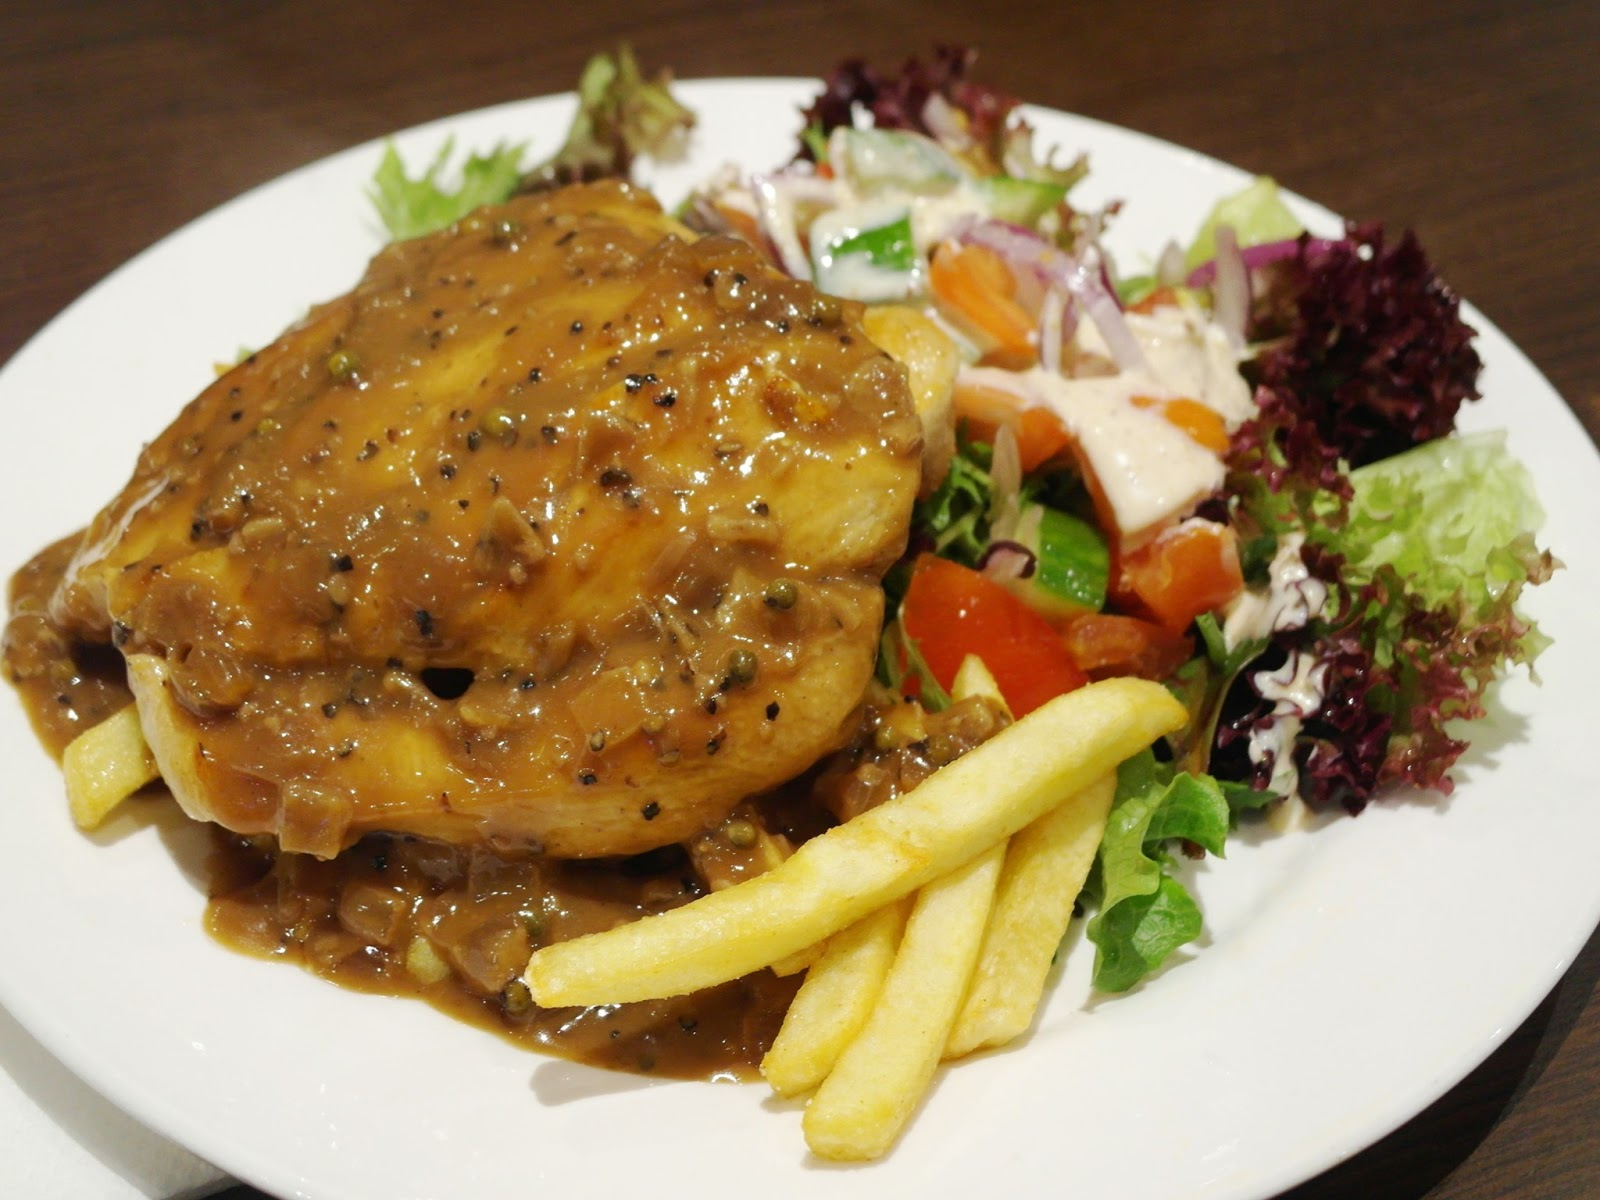 Chiken fillet with pepper sauce served with chips and salad i dont think you can ever go wrong with chicken unless its burnt or something